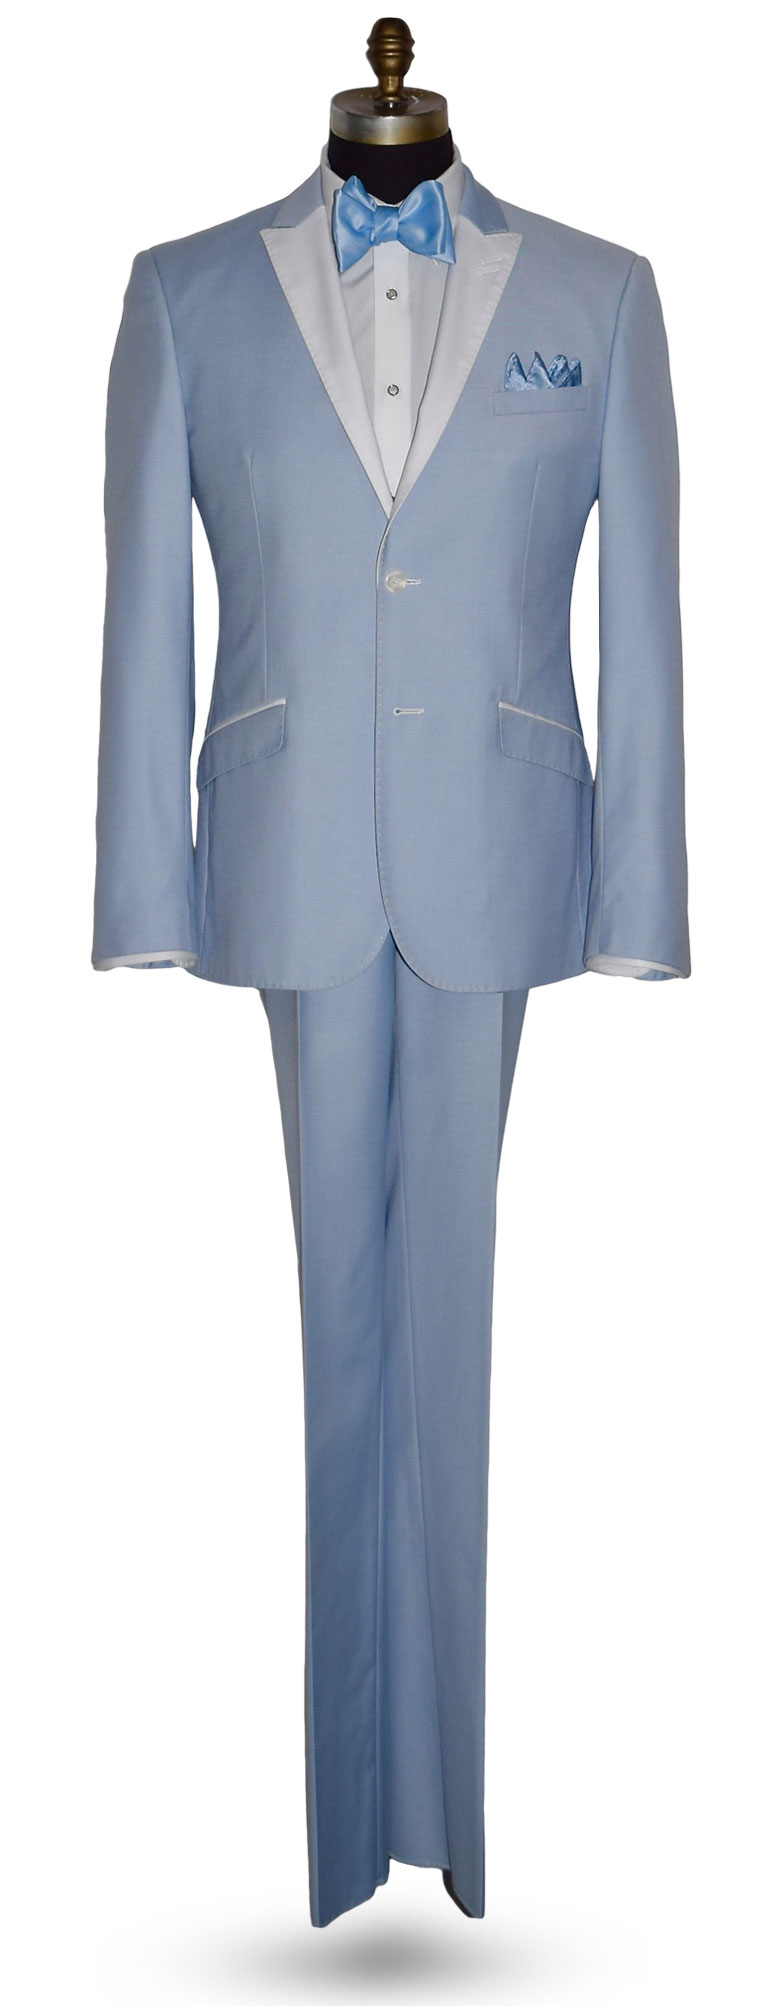 Powder Blue Tuxedo With Baby Blue Pants-Very Nice!